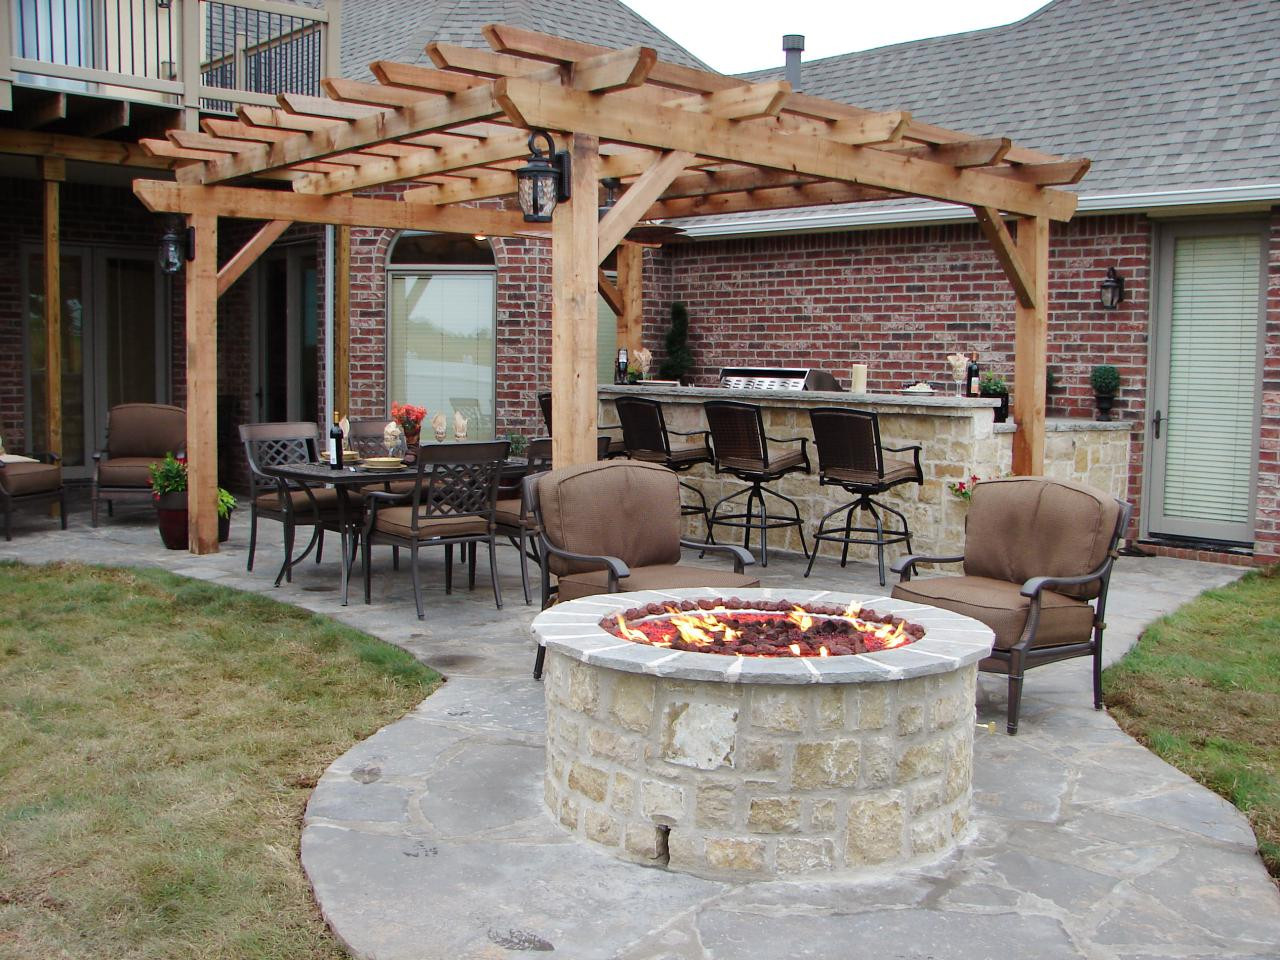 Outdoor Fireplace Design 66 Fire Pit and Outdoor Fireplace Ideas